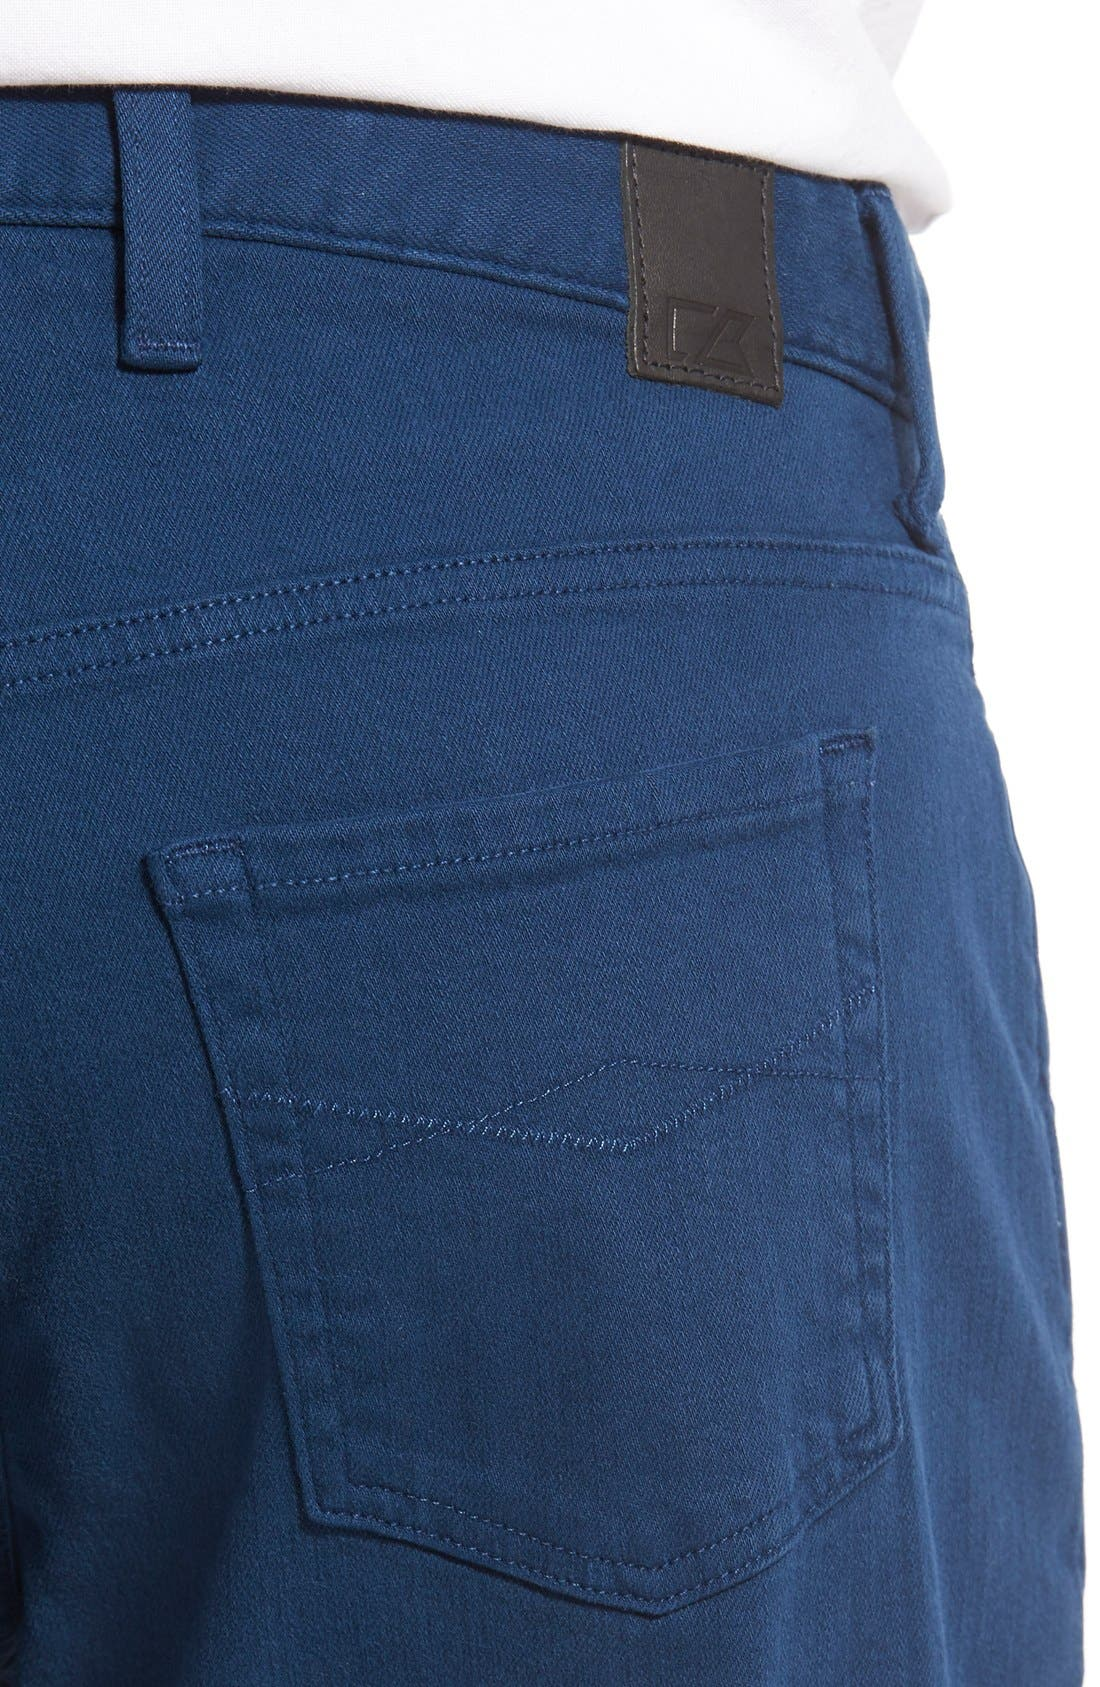 'Greenwood' Relaxed Fit Jeans,                             Alternate thumbnail 9, color,